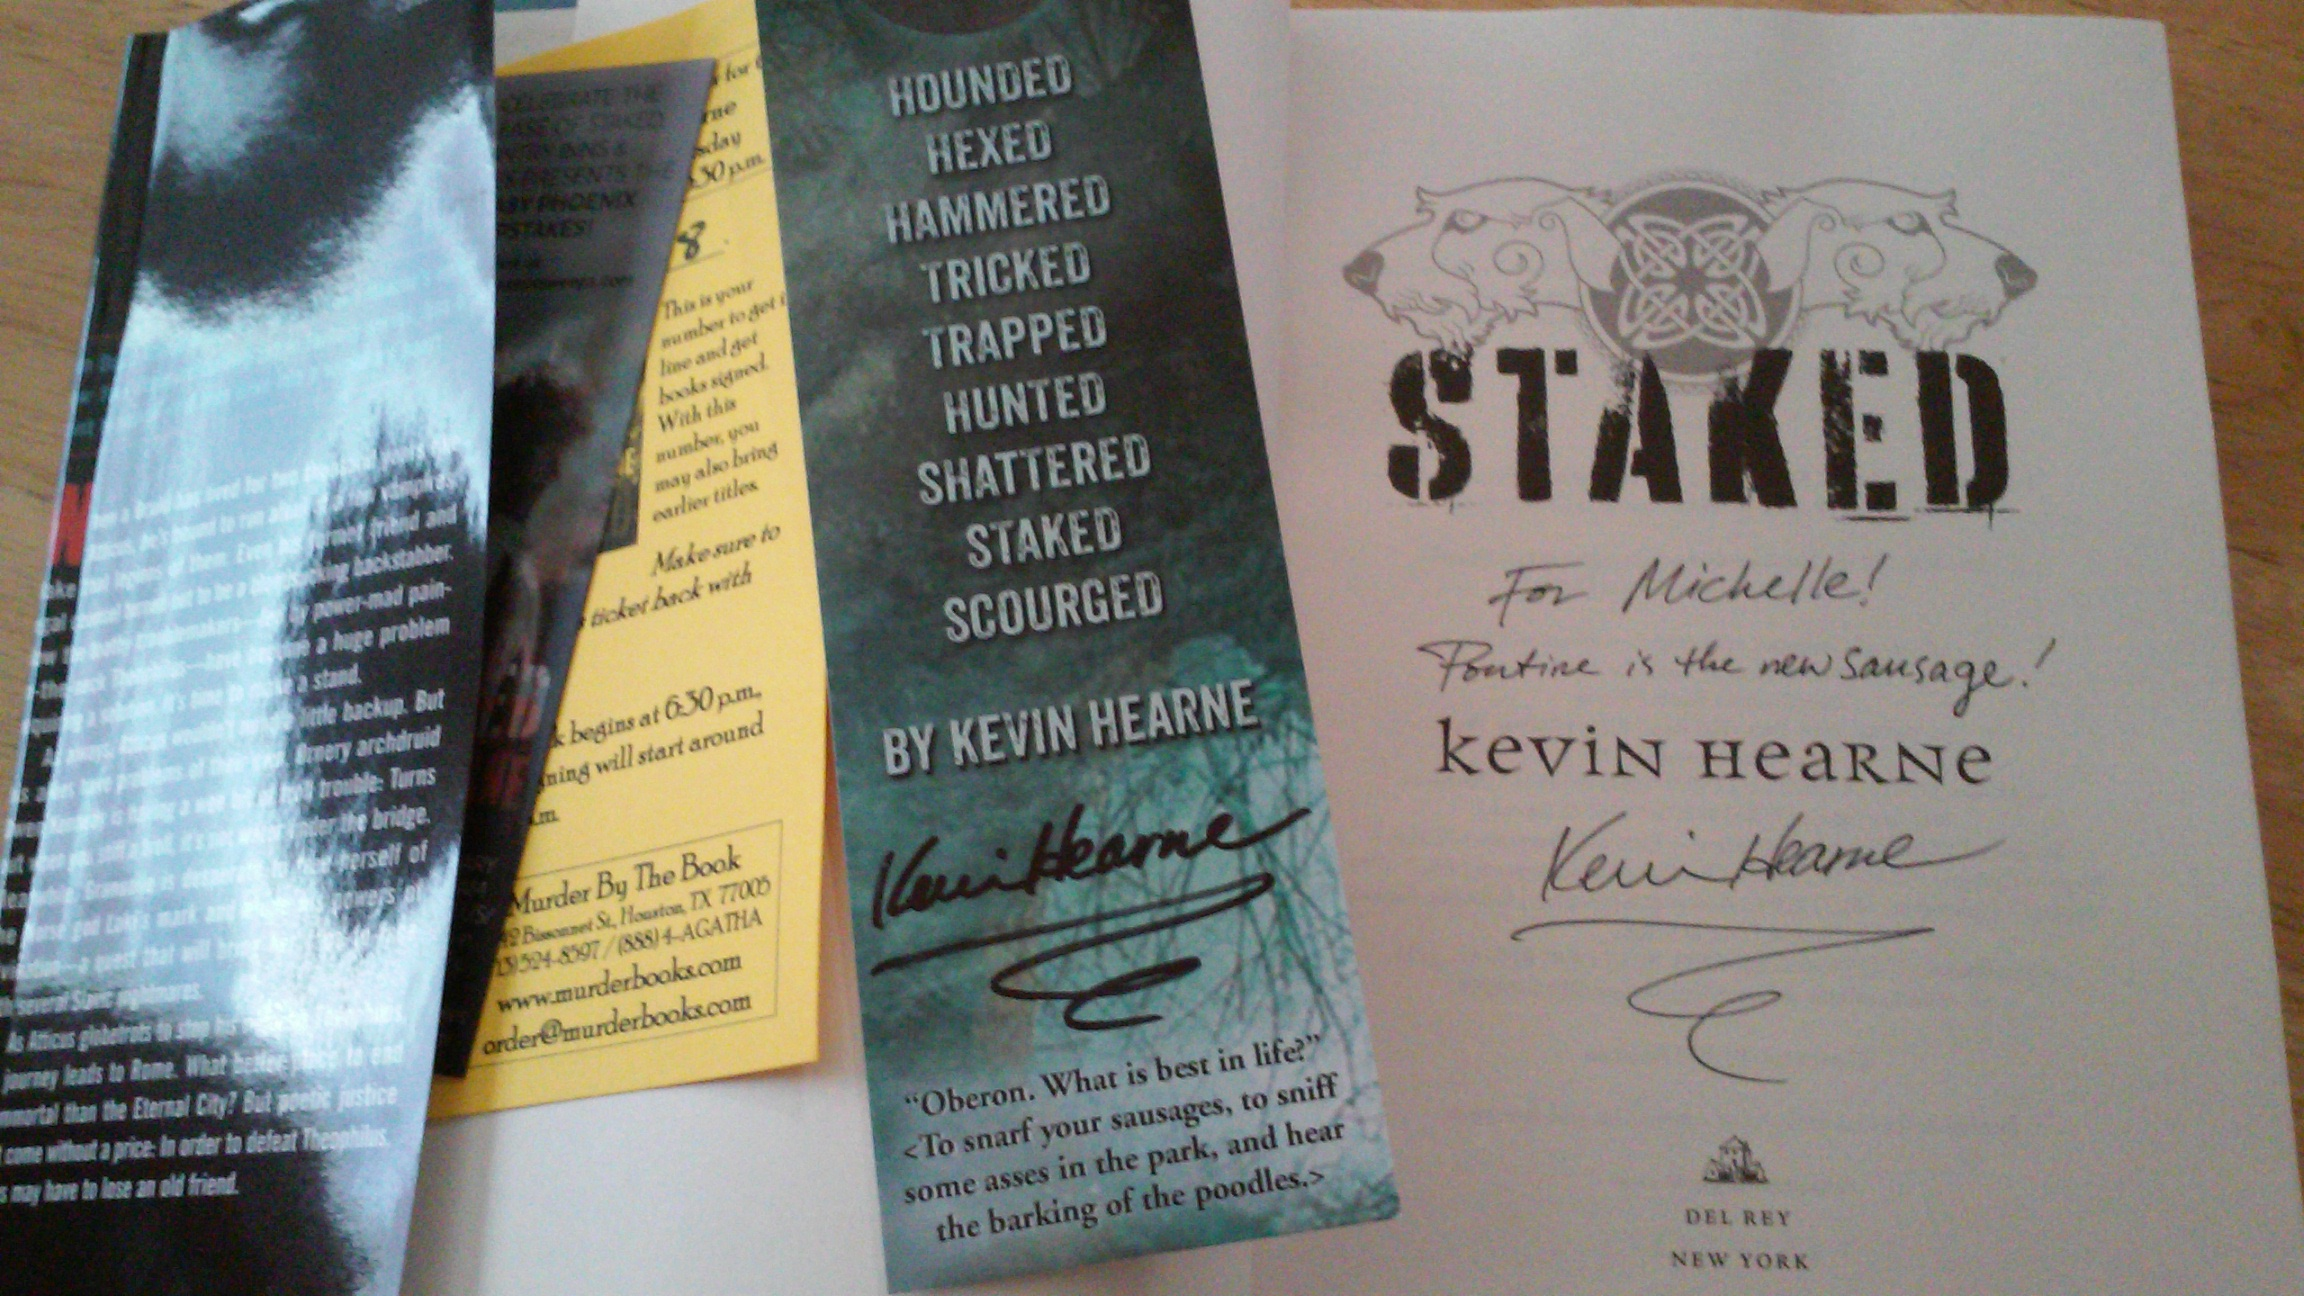 Staked Is The Latest Book In The Iron Druid Series By Kevin Hearne And This  Copy